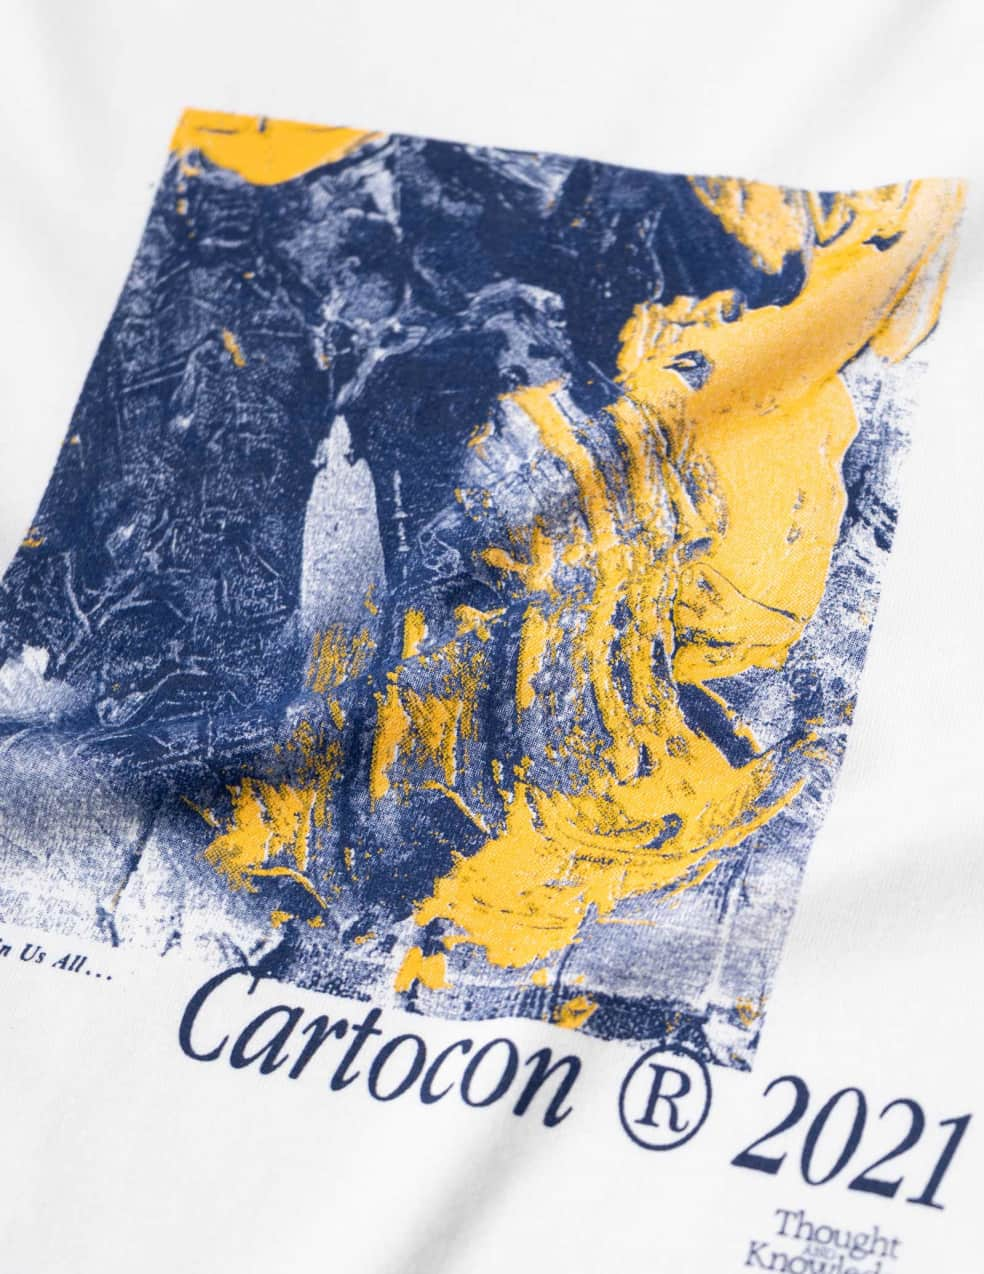 CARTOCON Thought & Knowledge T-Shirt - White   T-Shirt by Cartocon 2